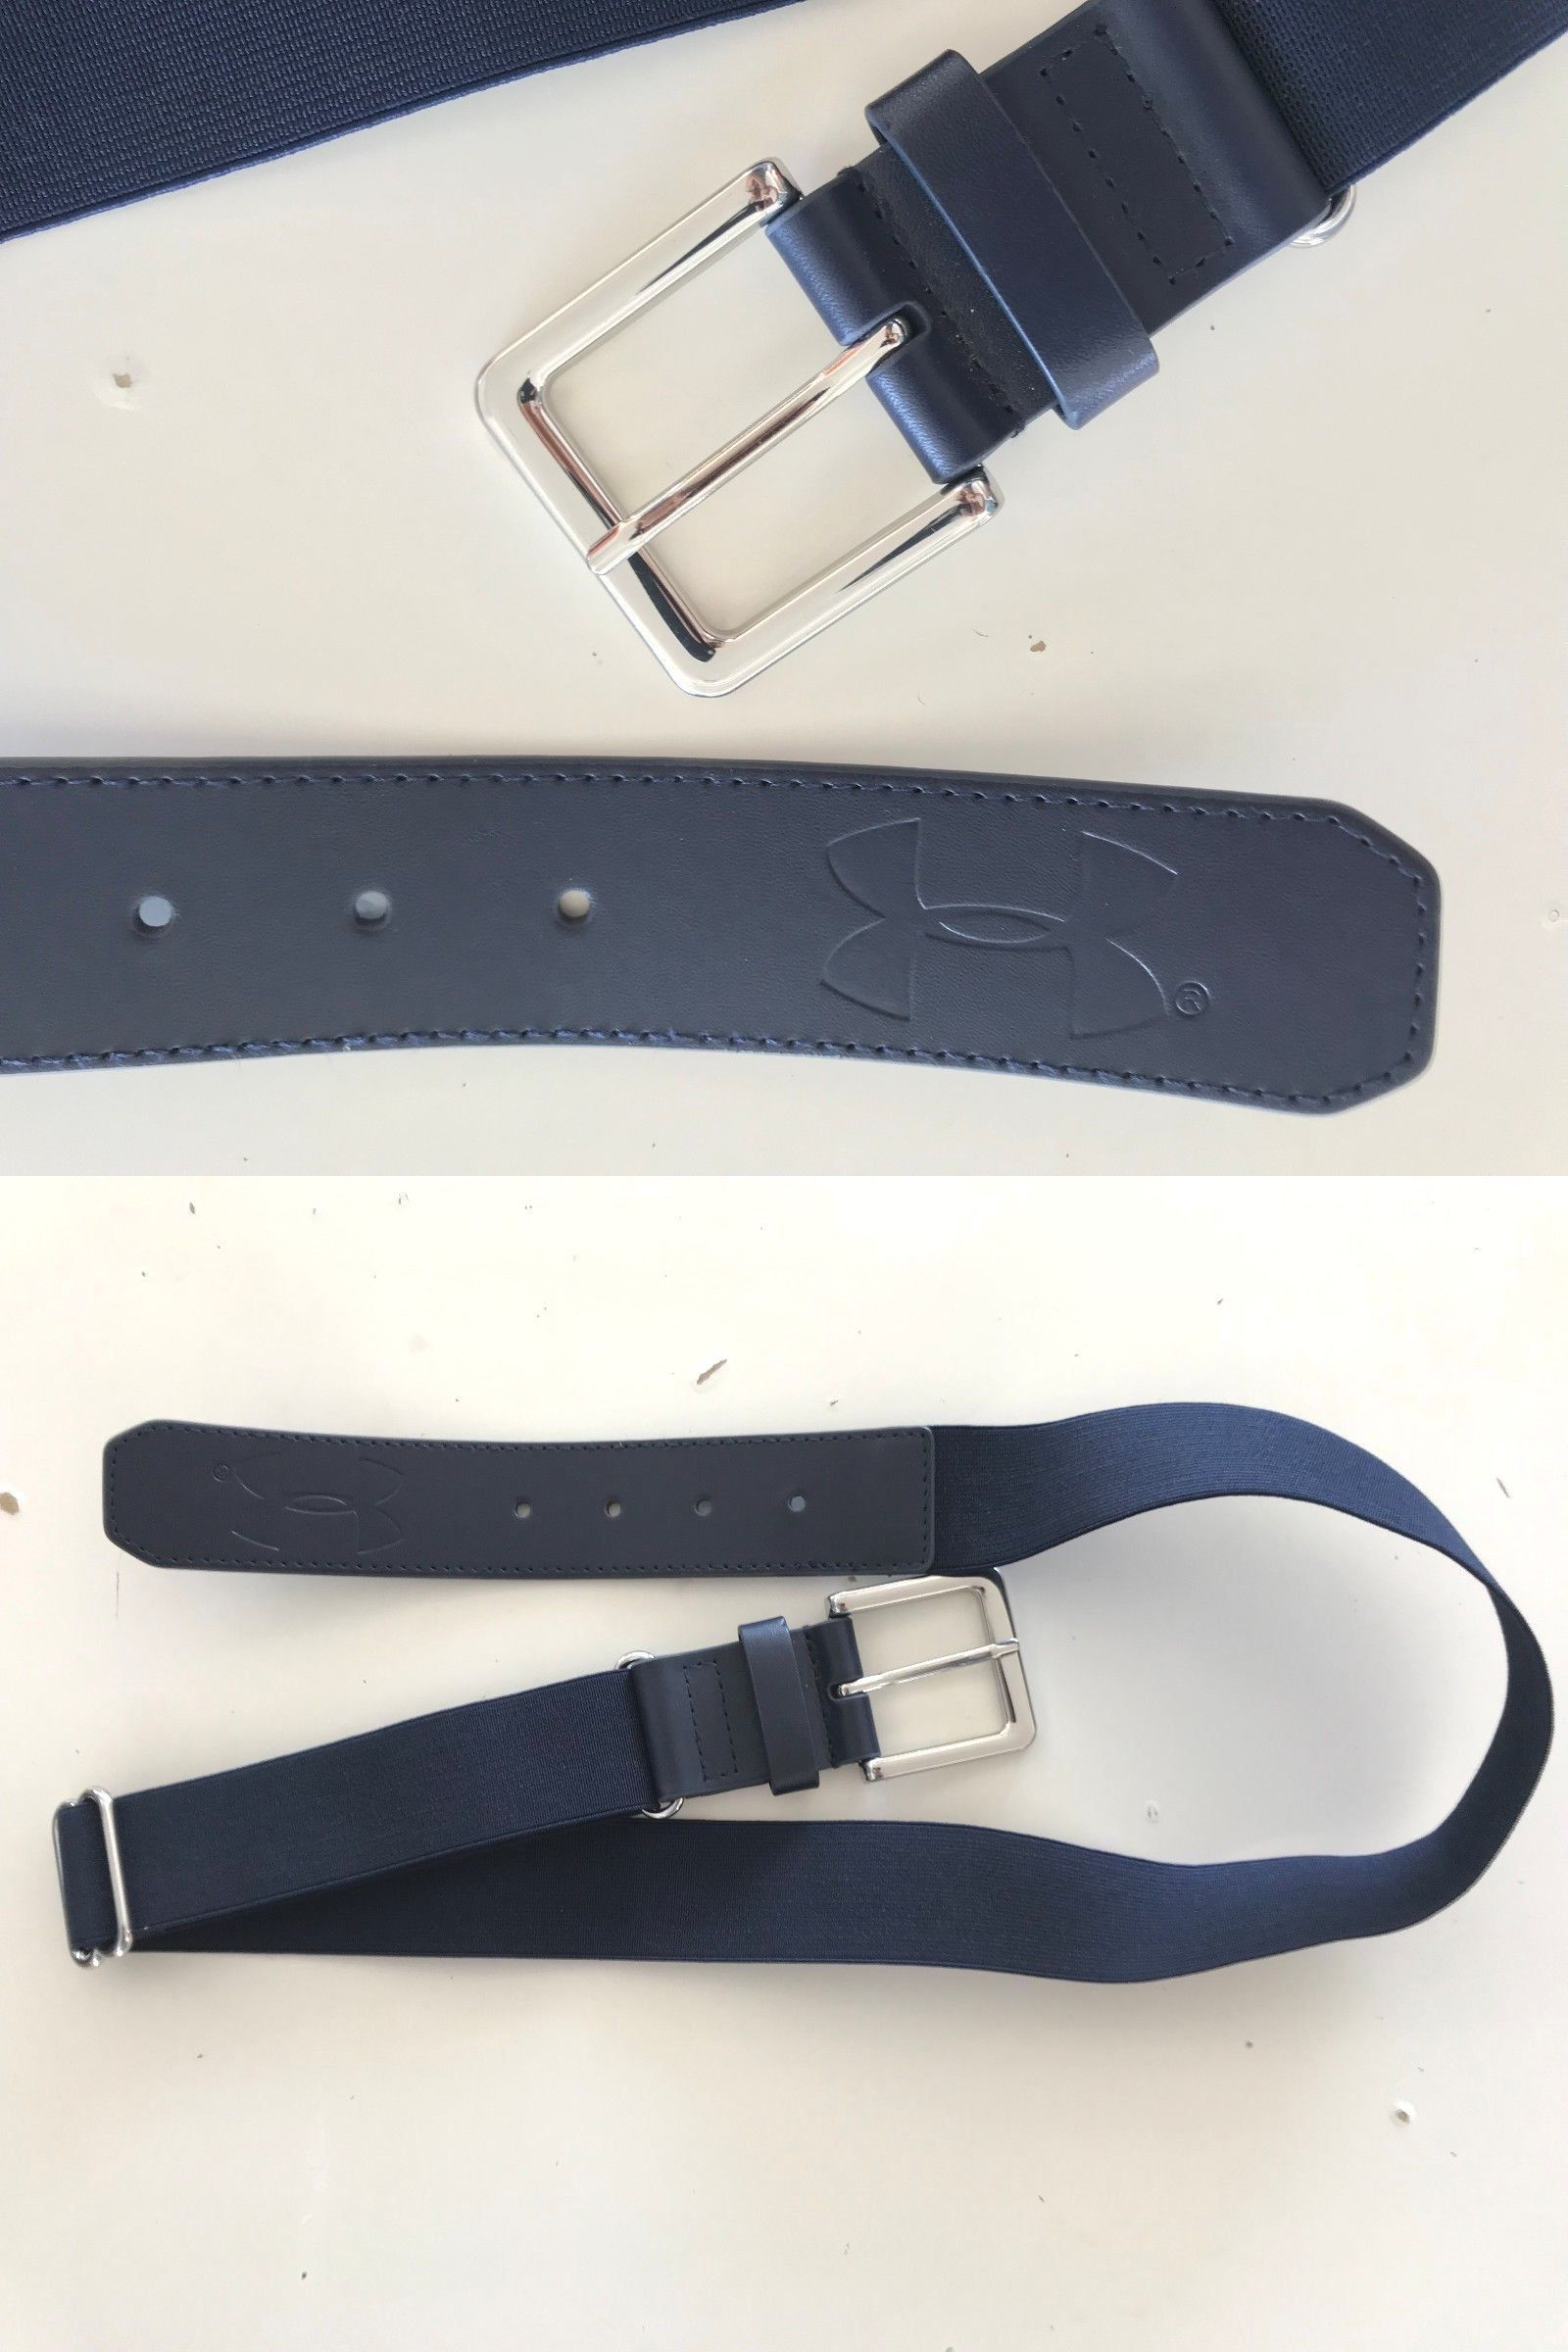 d8c8ca5491e Baseball Belts 181334  Mens Under Armour Navy Baseball Belt With Silver  Buckle -  BUY IT NOW ONLY   15 on eBay!